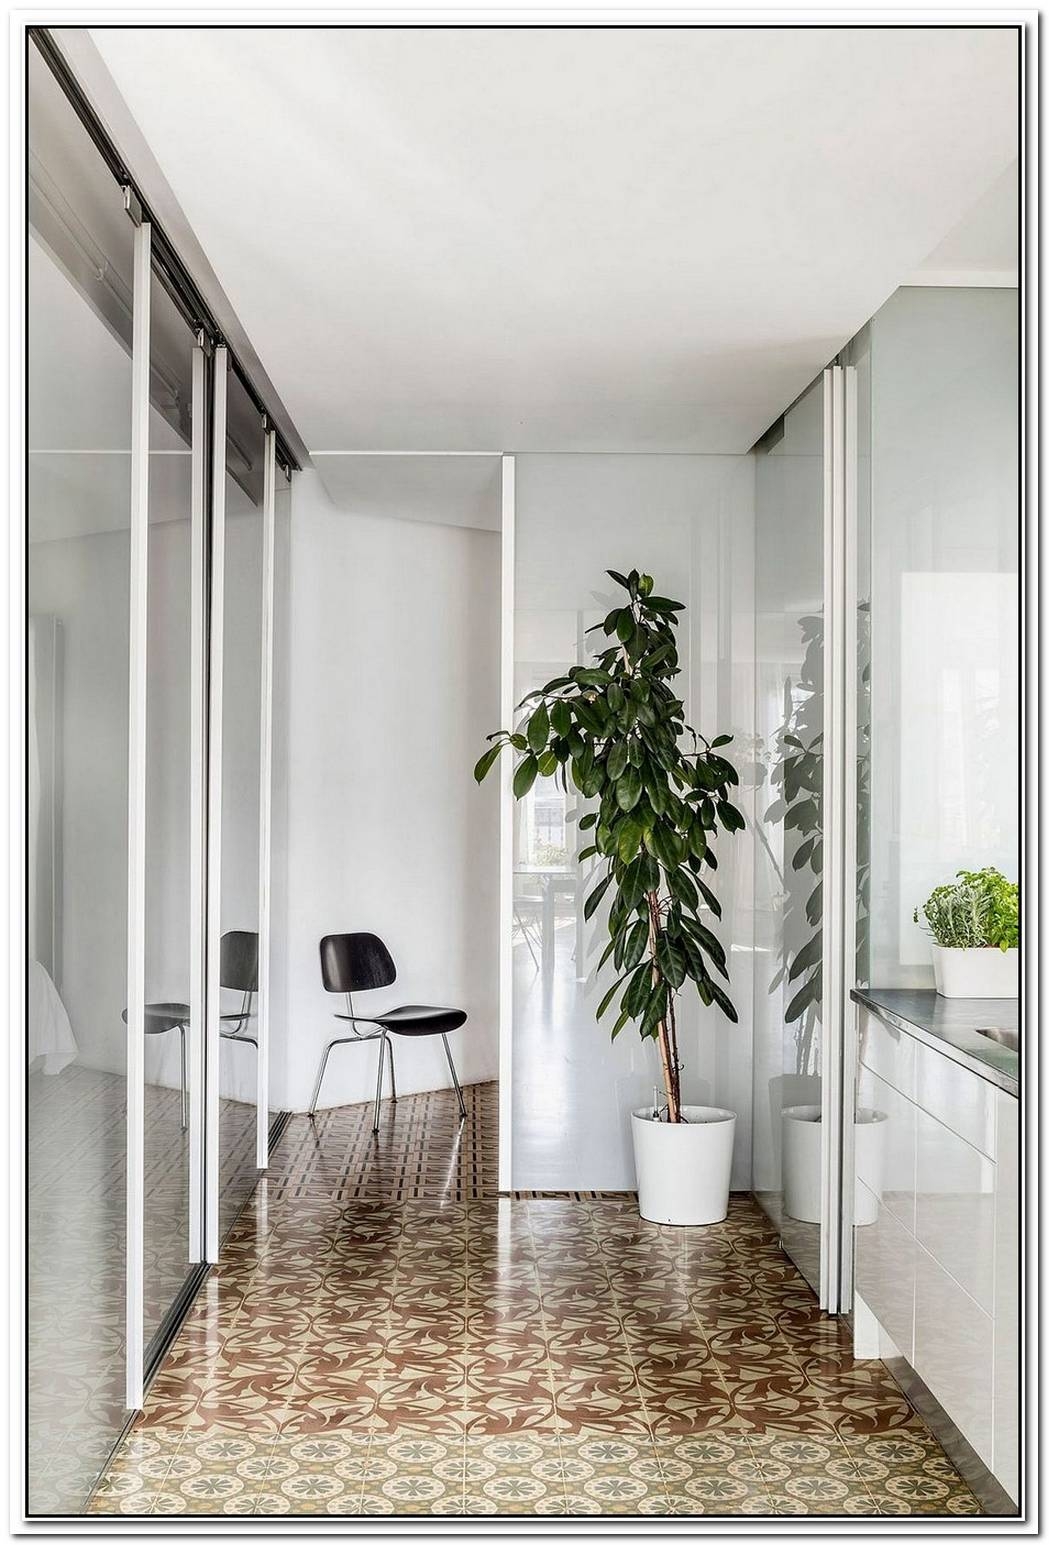 This 64Sqm Apartment Reimagines Space Using Partitions And Sliding Doors